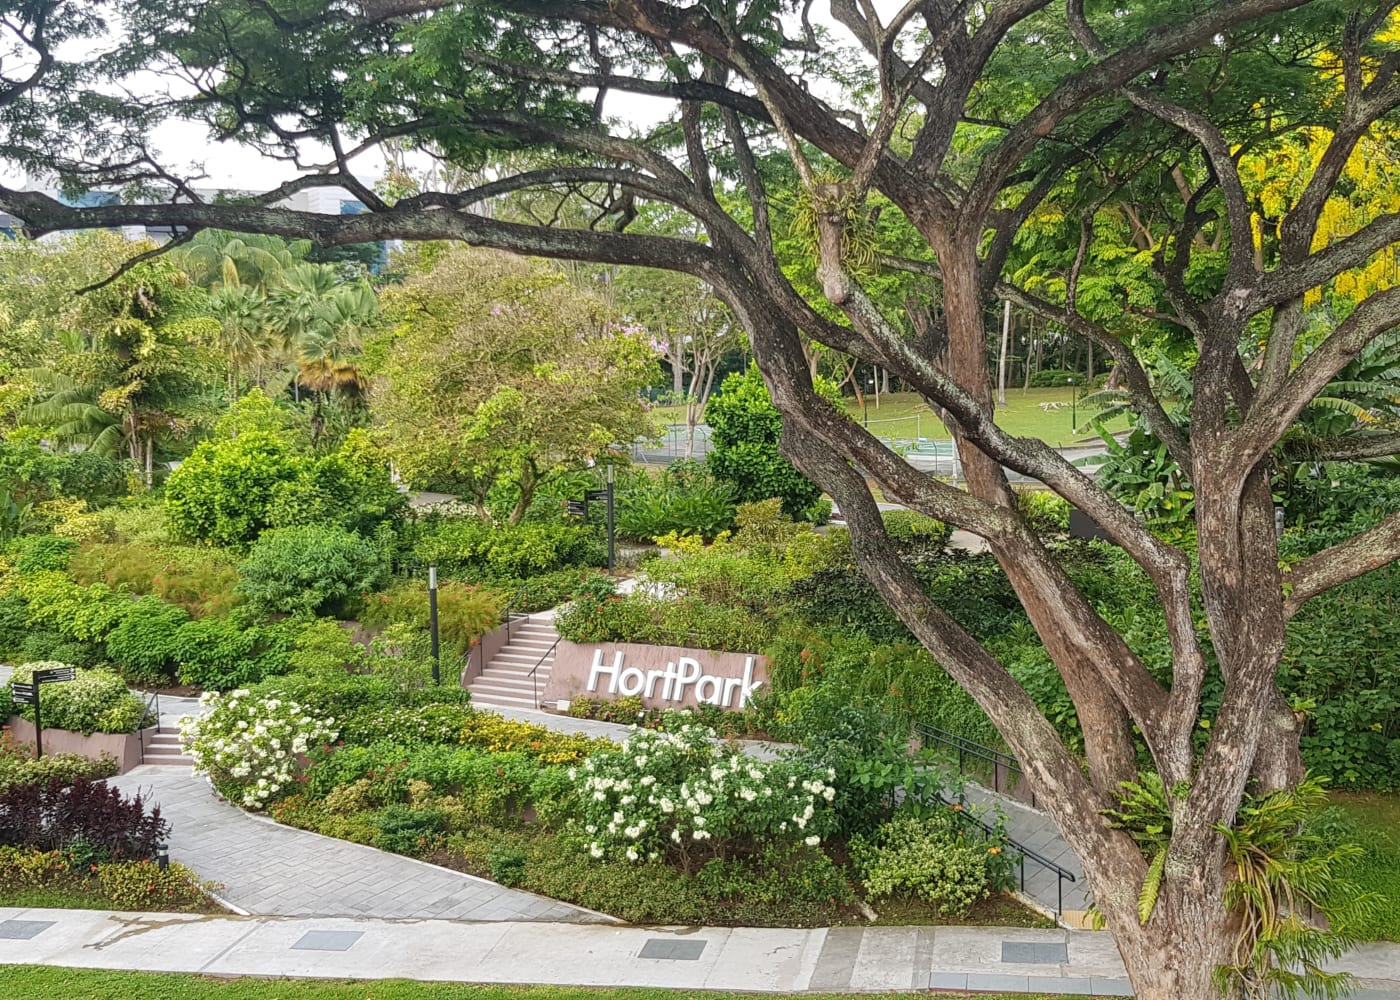 southern ridges hort park | Best playgrounds and parks in Singapore for kids of all ages